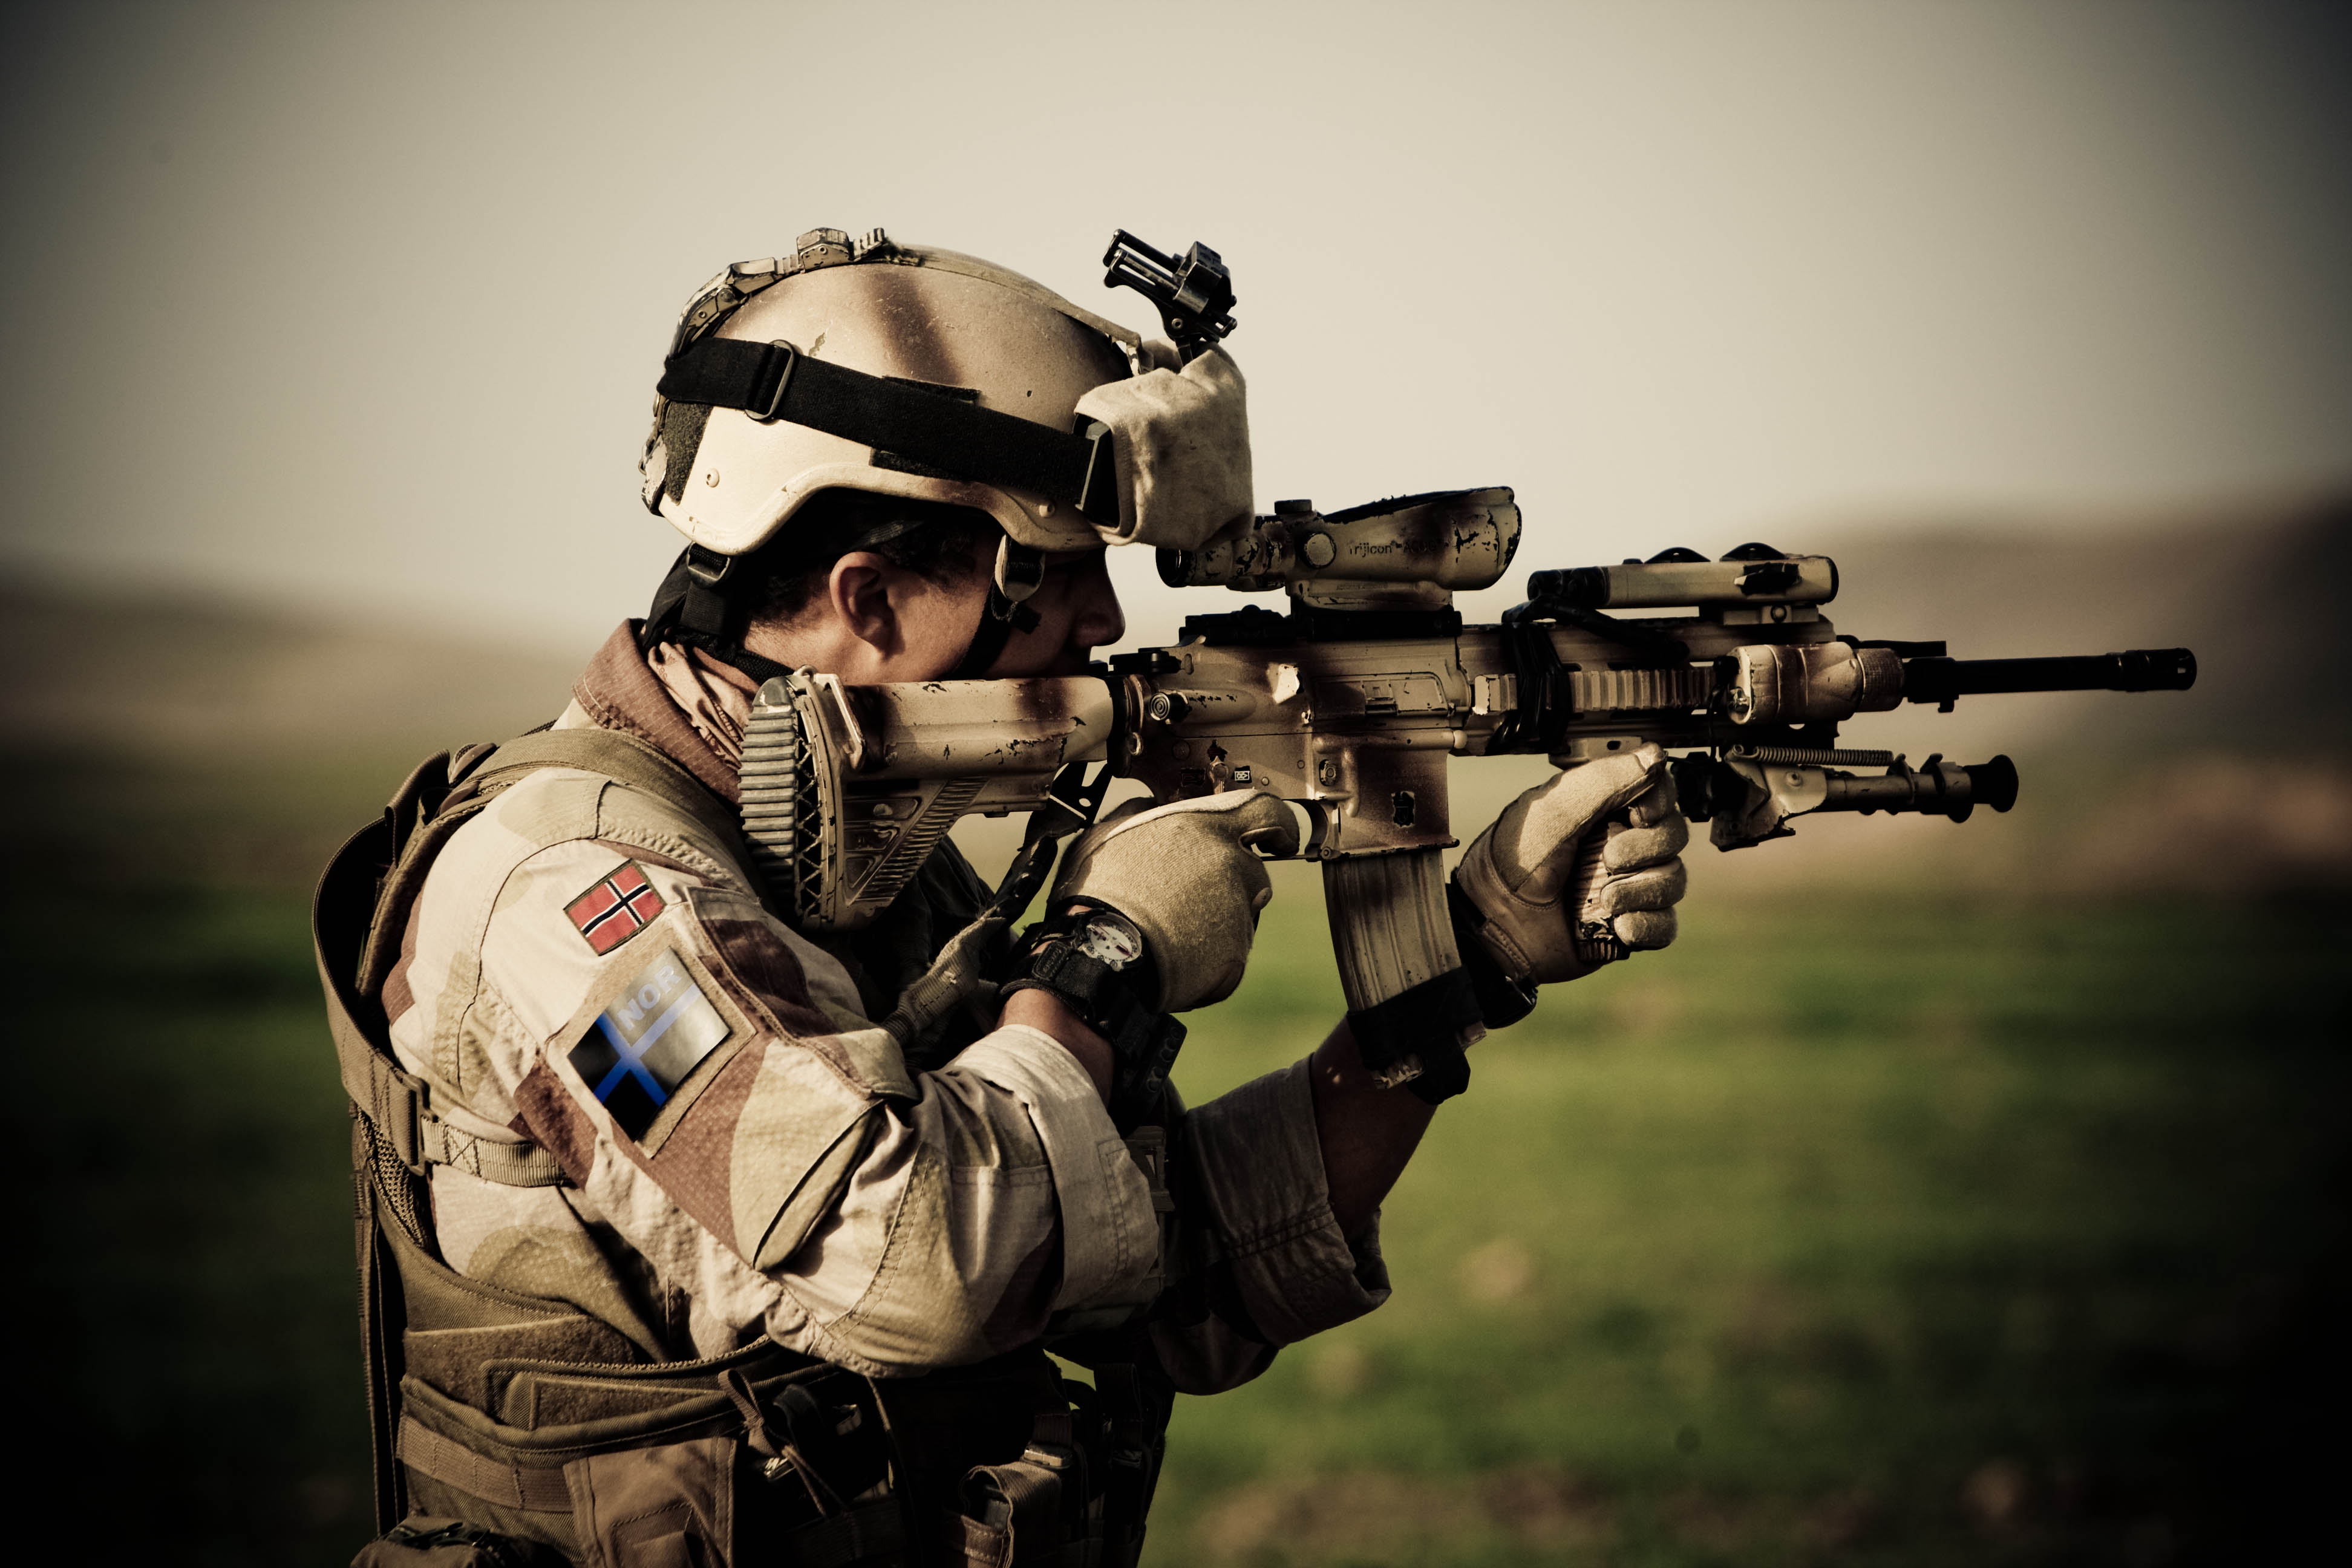 Soldier with H&K416